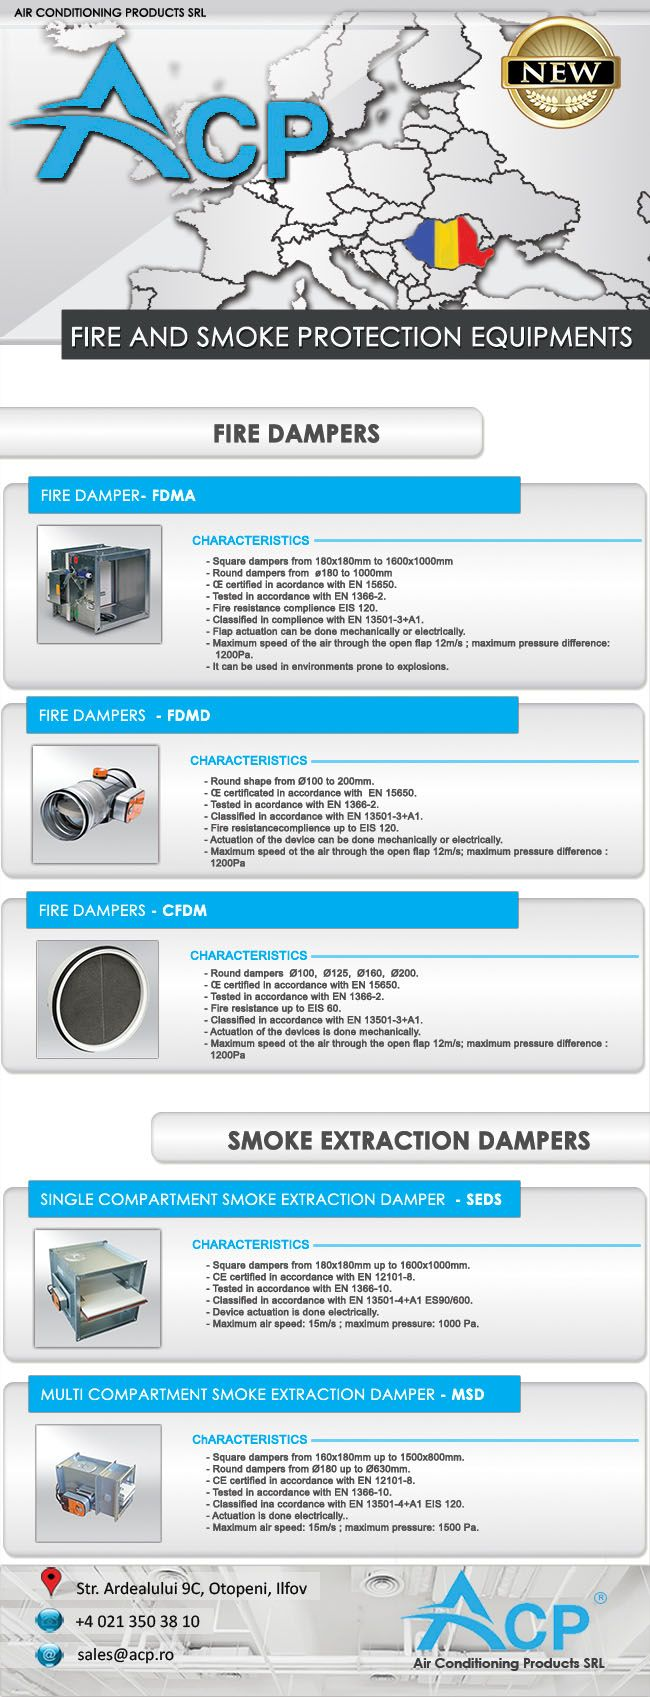 New products available for acquisition. Please visit our site or contact our sales department for more details